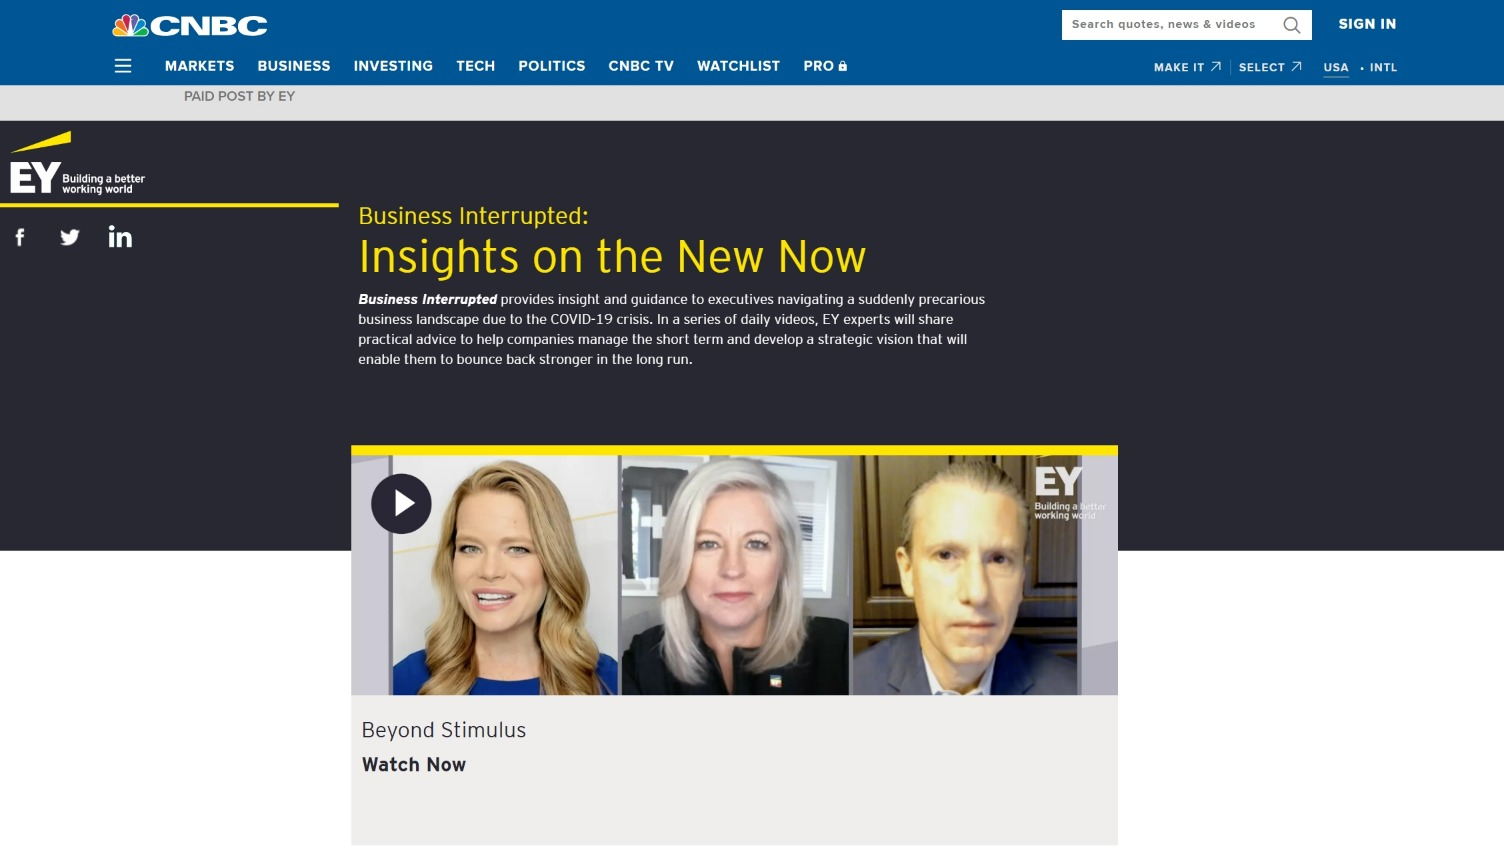 CNBC and EY Business Interrupted